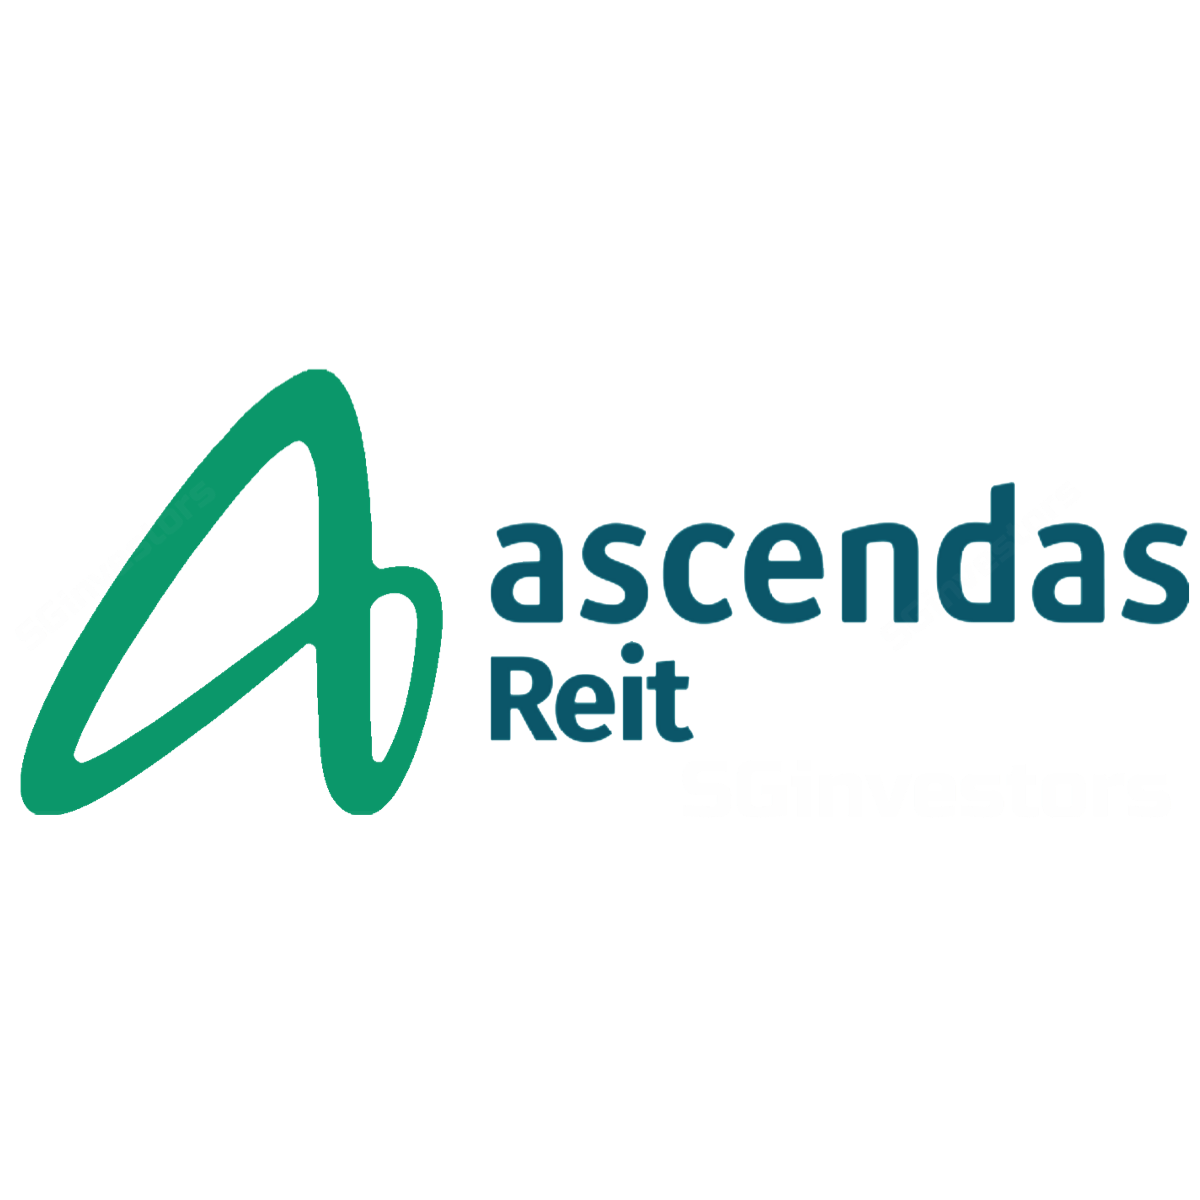 Ascendas REIT - RHB Invest 2017-07-28: Another Solid Quarter